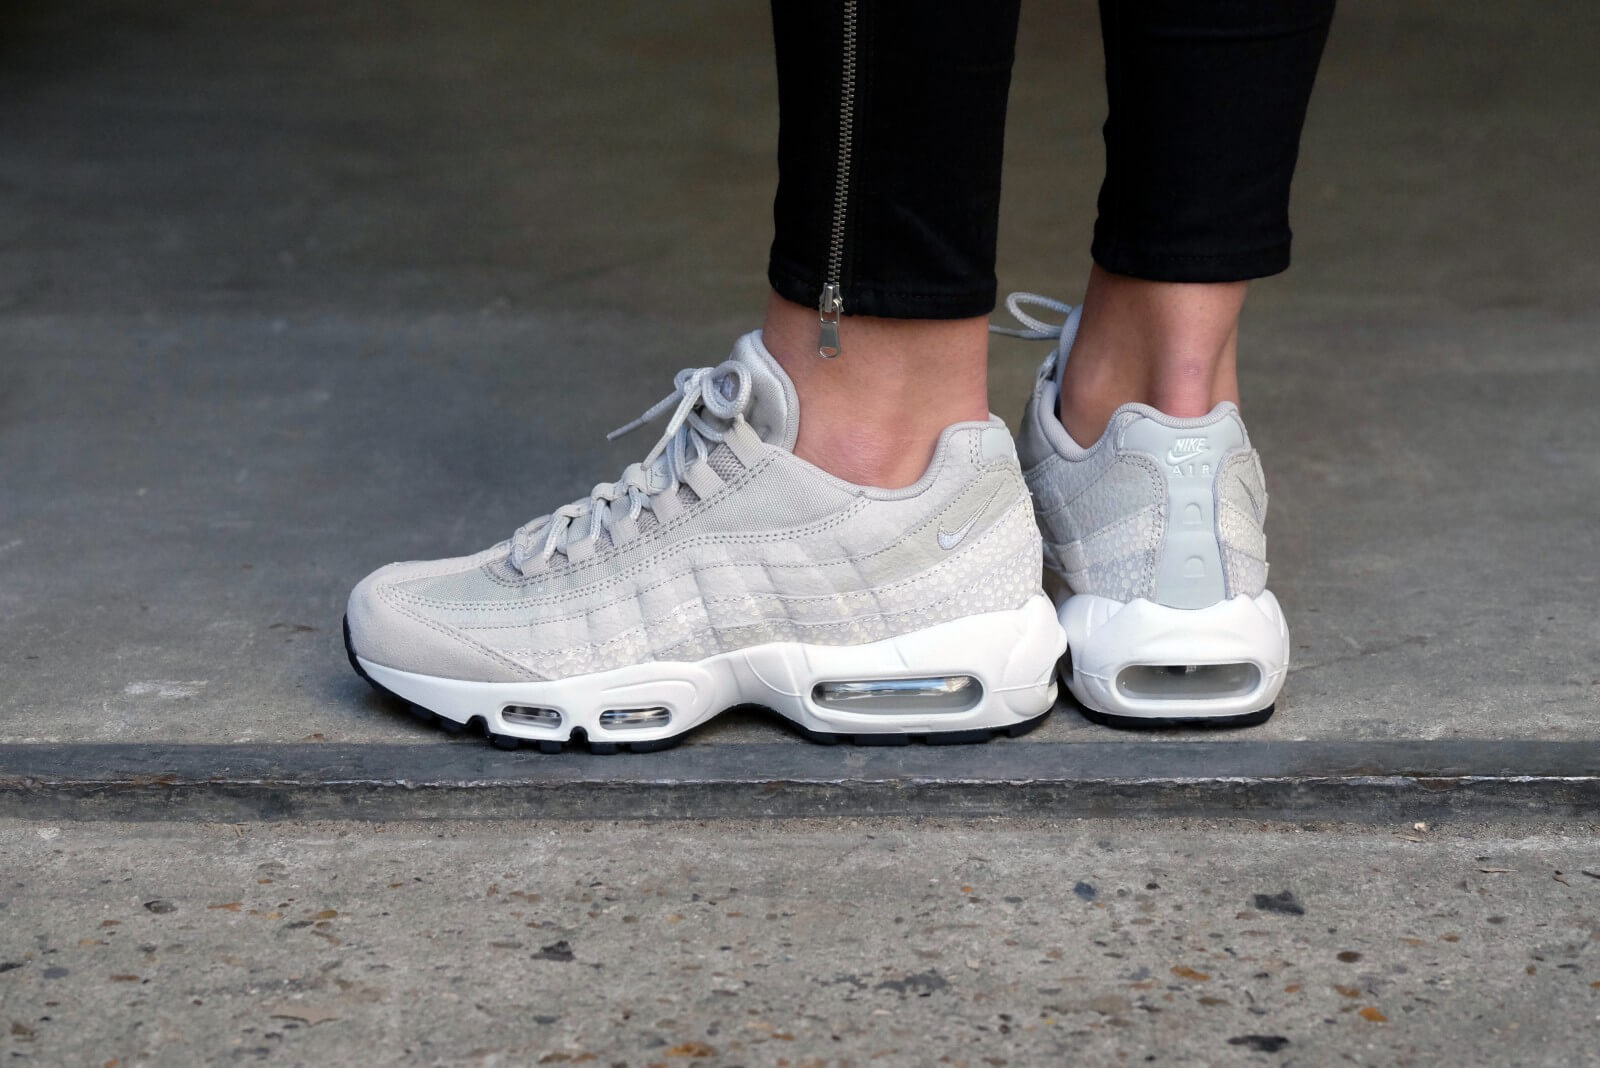 c8be497e4d85 ... Nike WMNS Air Max 95 Pale GreySummit White-Ivory-Light Bone - 807443-  ...